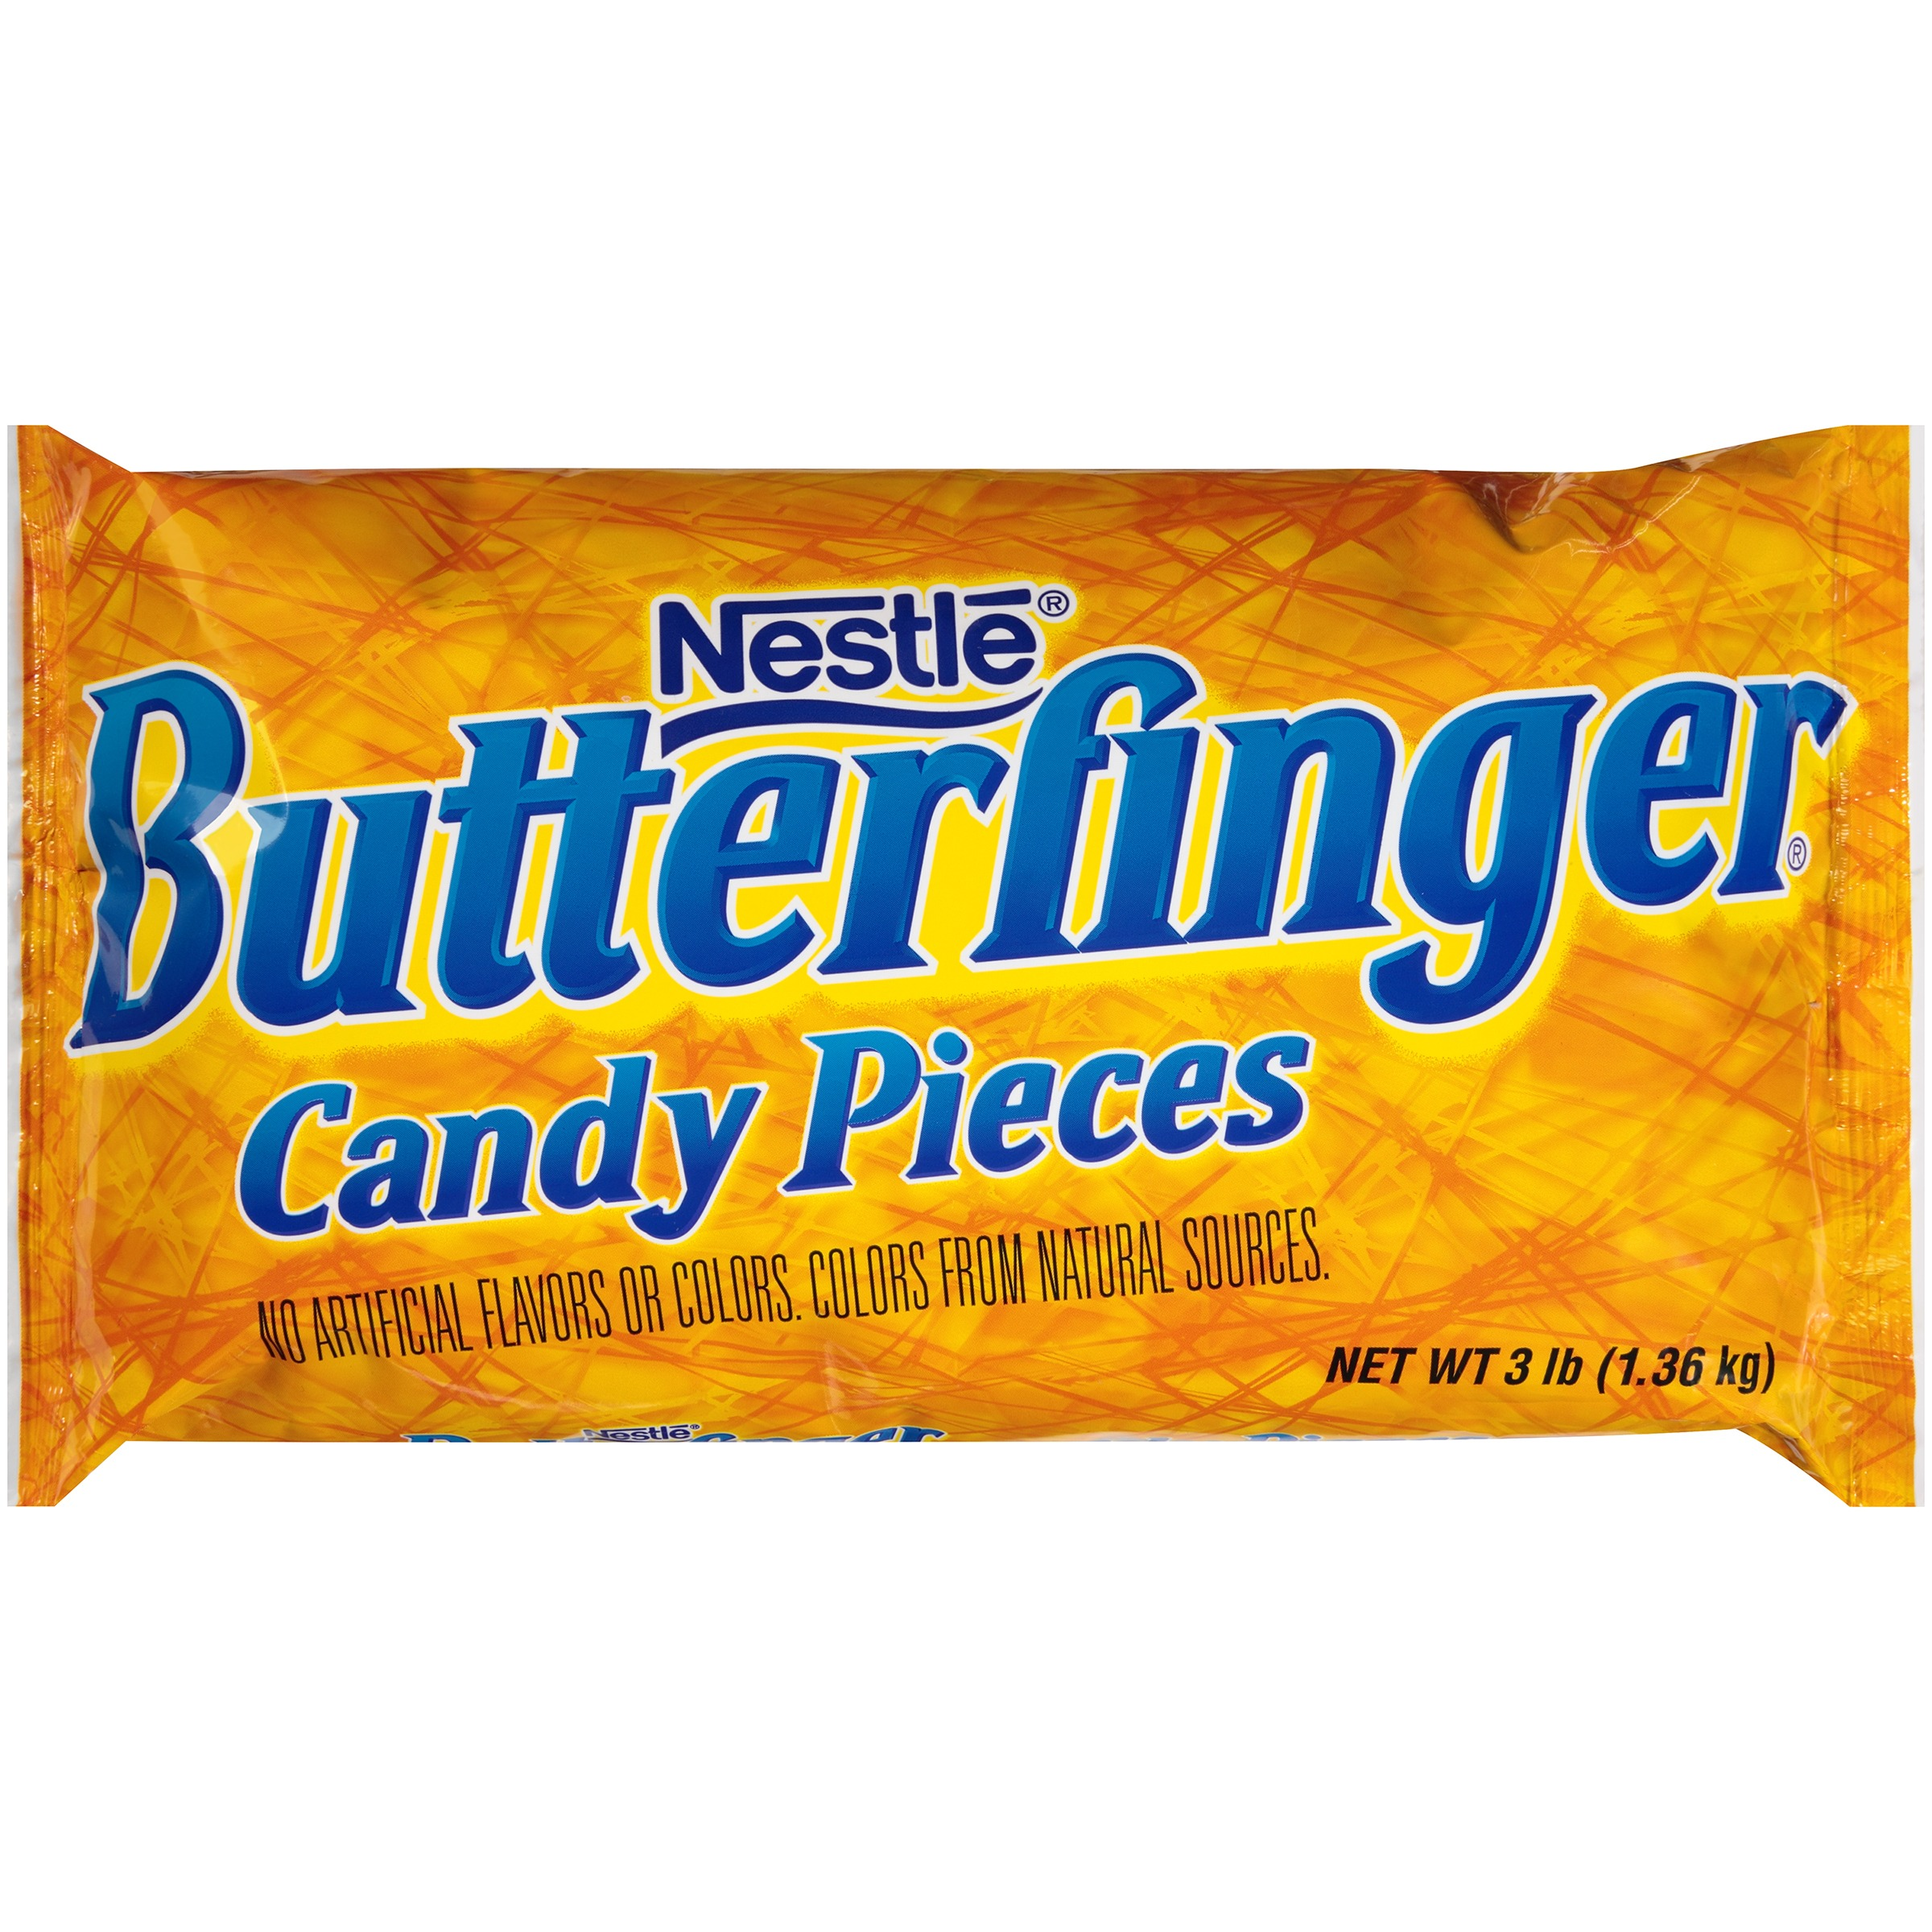 Nestlé Butterfinger Candy Pieces 3 lb Bag